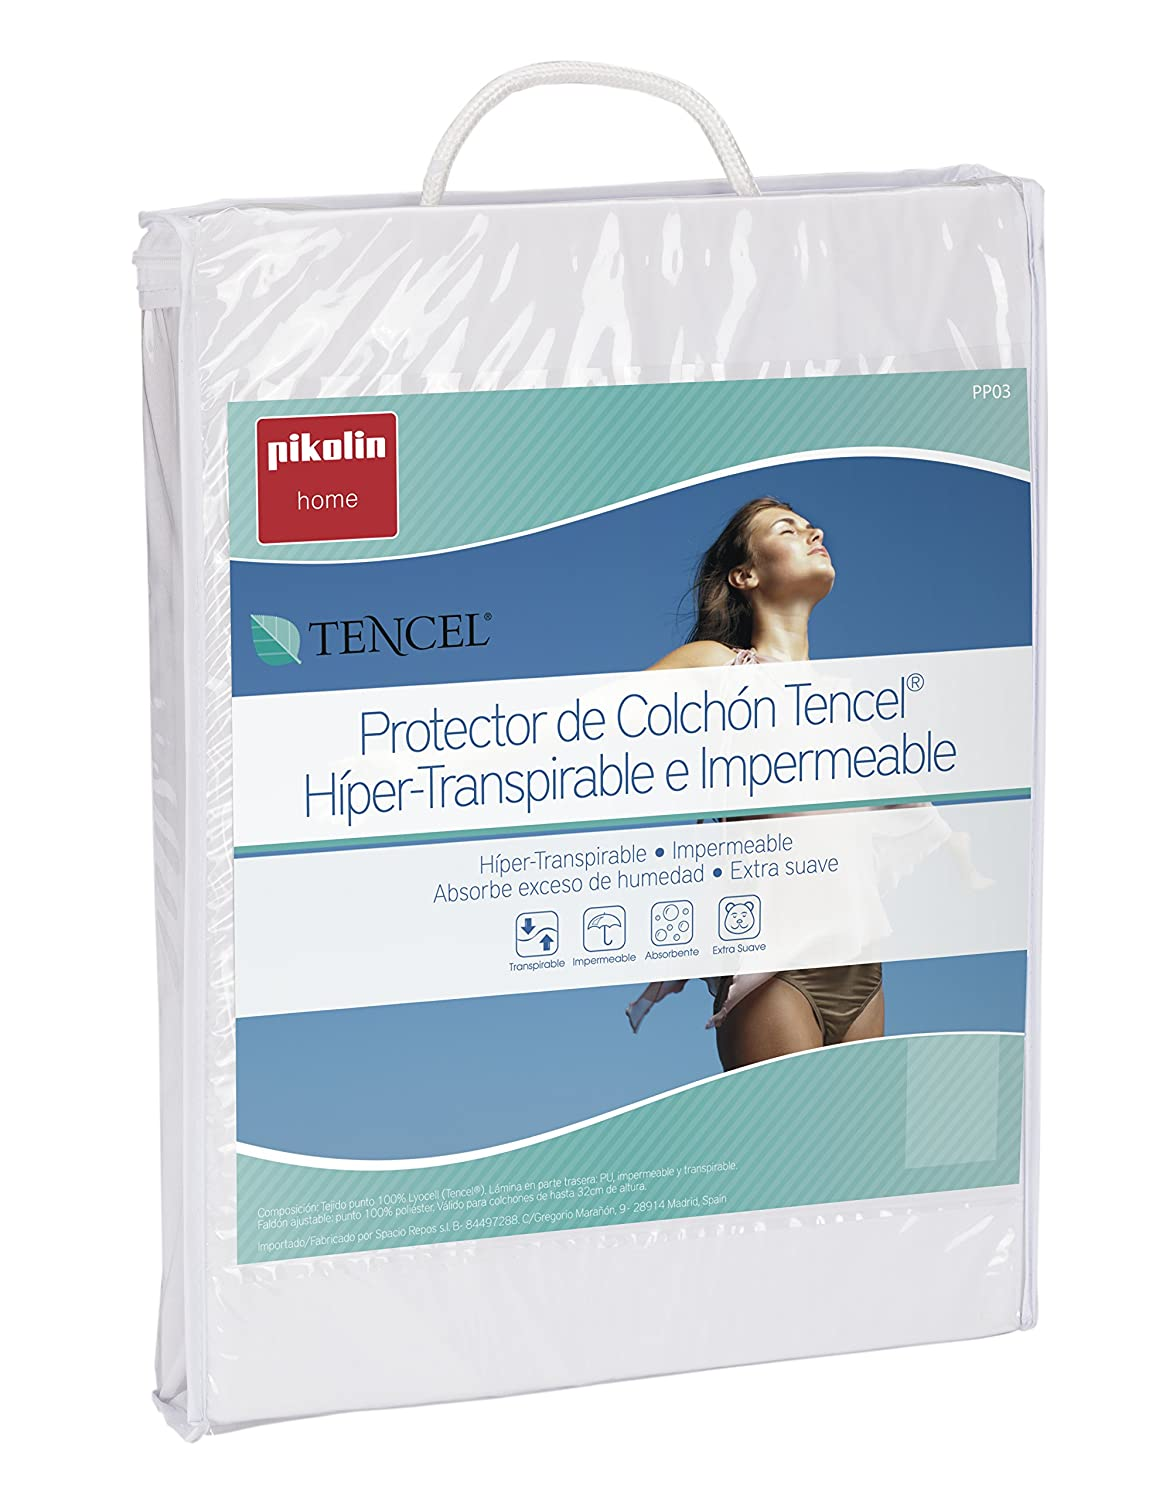 Pikolin Home - Protector de Colchón Lyocell, Híper-transpirable e Impermeable, Color Blanco, 90 x 190/200 cm, Cama 90 cm: Amazon.es: Hogar